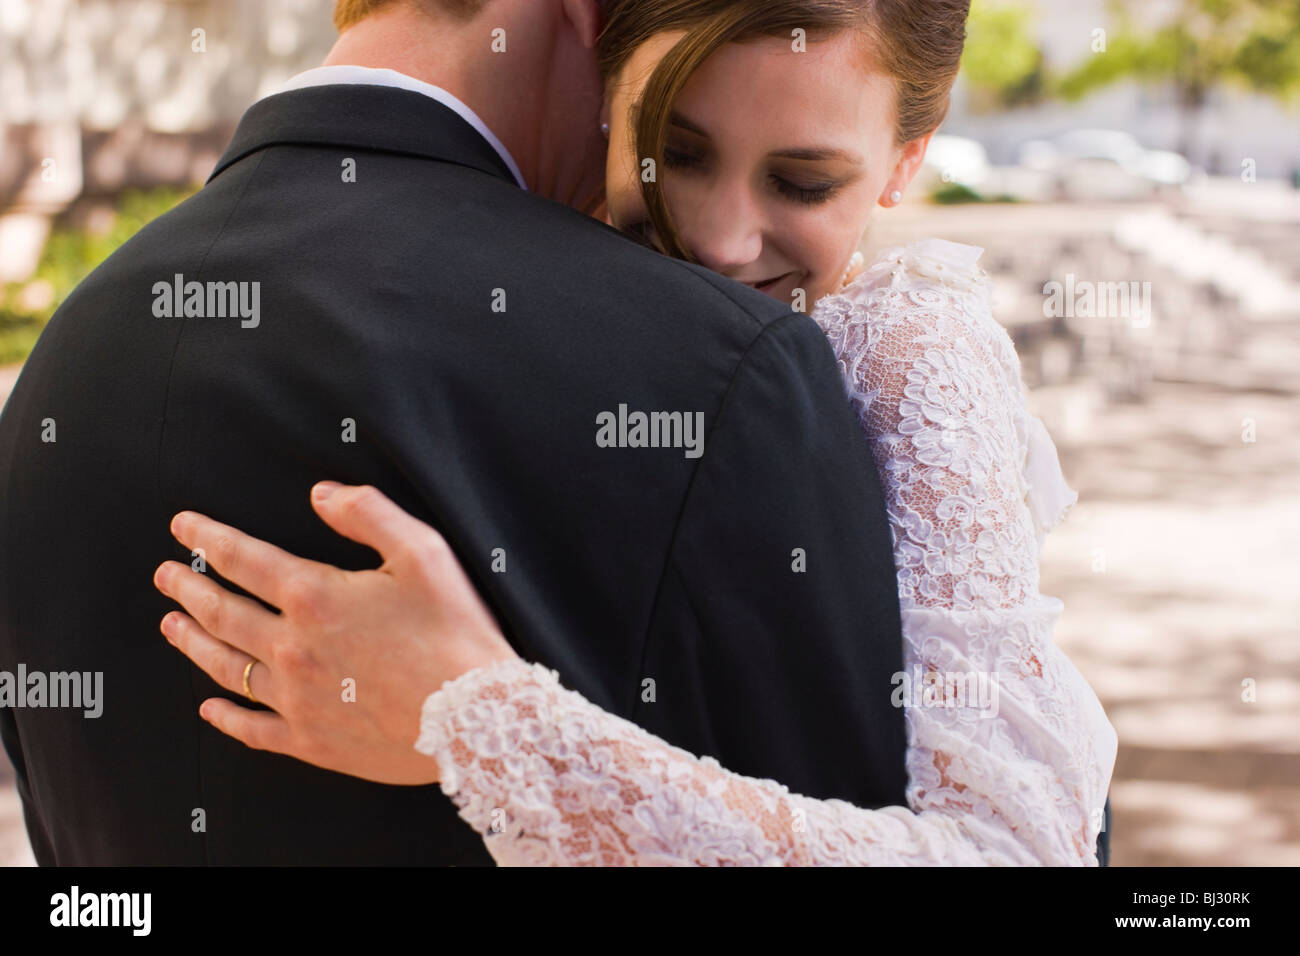 bride and groom before wedding - Stock Image